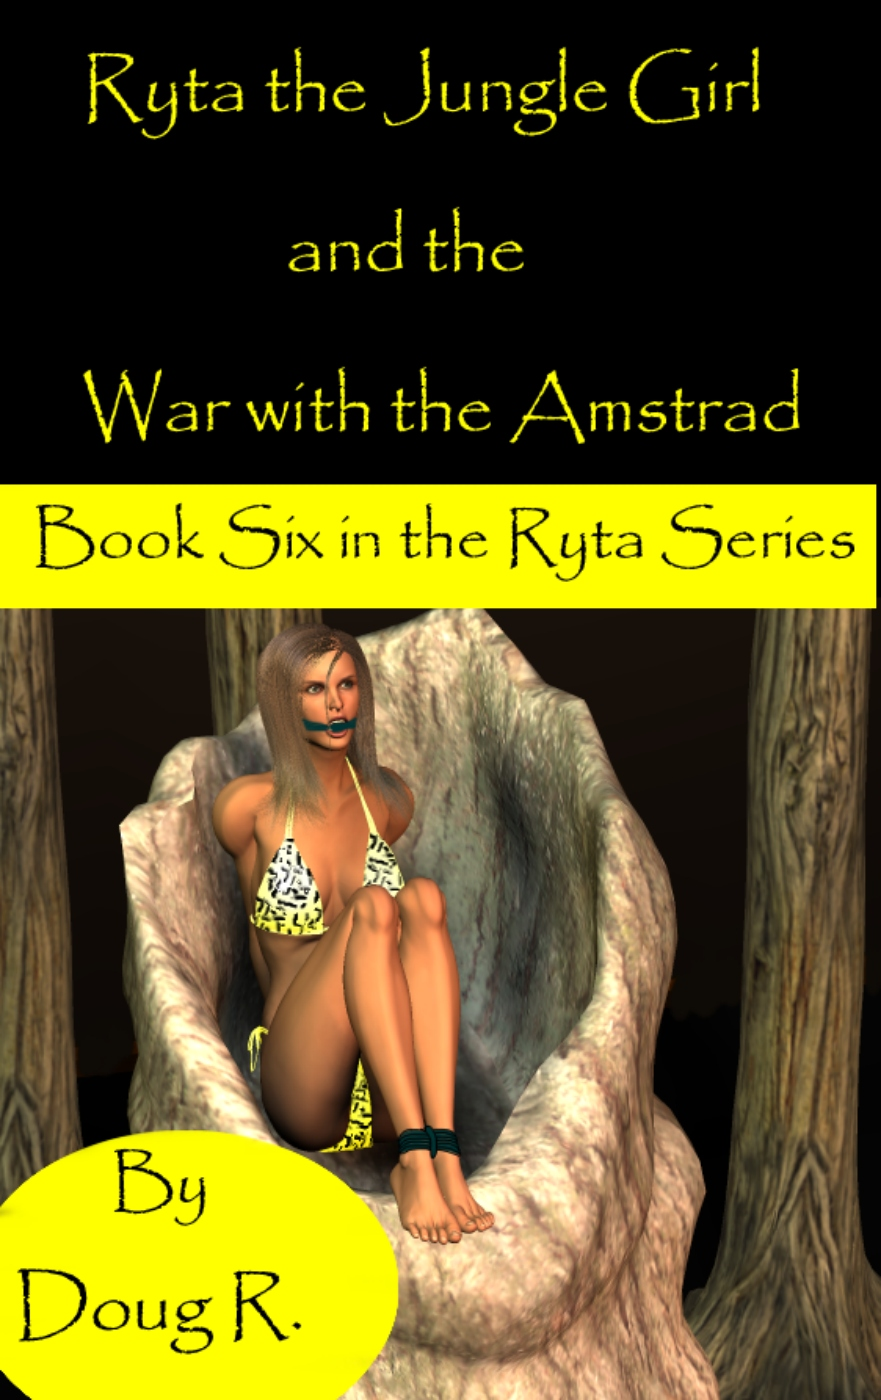 Ryta the Jungle Girl and the War with the Amstrad